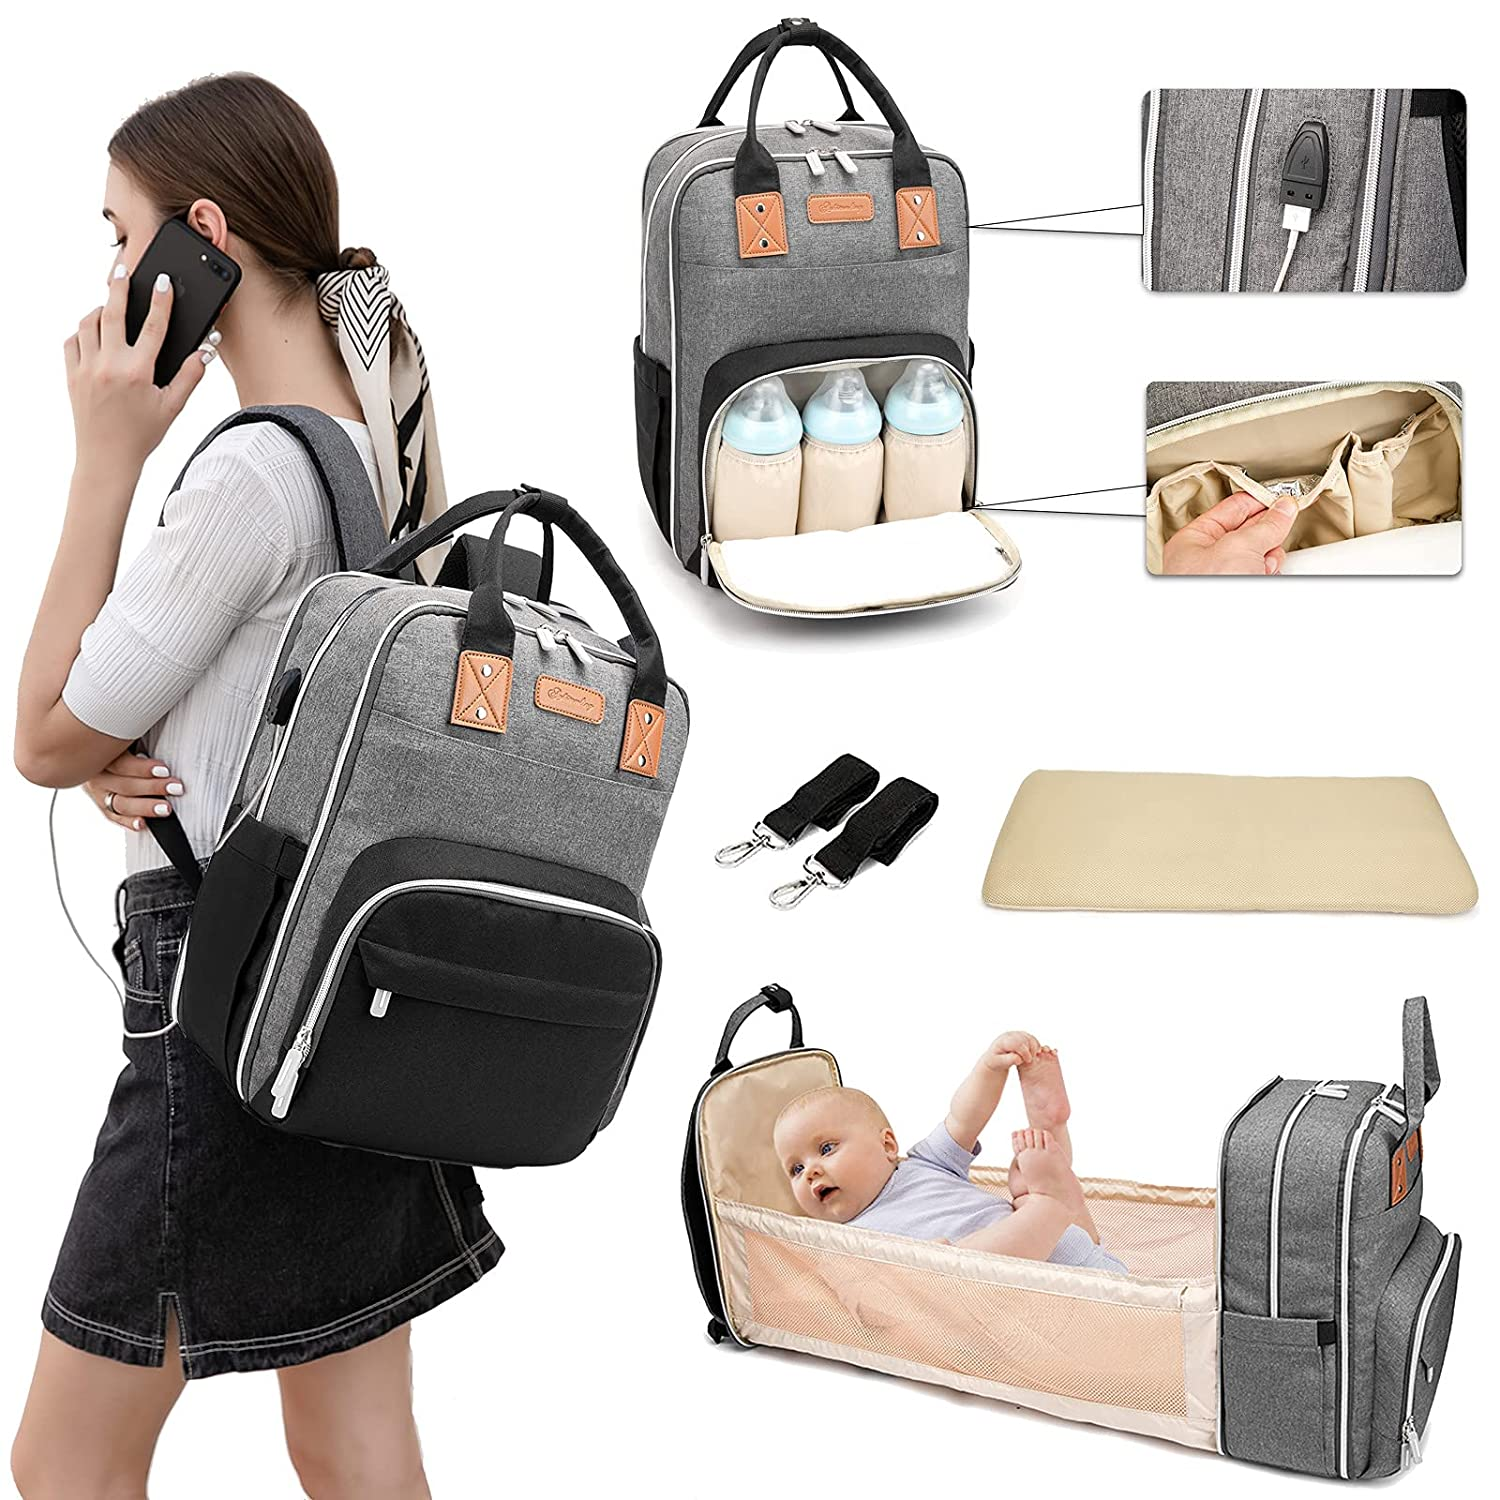 Dad Diaper Bag Backpack With Changing Station Built-in USB Port Portable Foldable Mommy Bag Waterproof Stylish Large Capacity Travel Bassinet It's Ok To Install On Suitcases And Strollers (Black Gray)